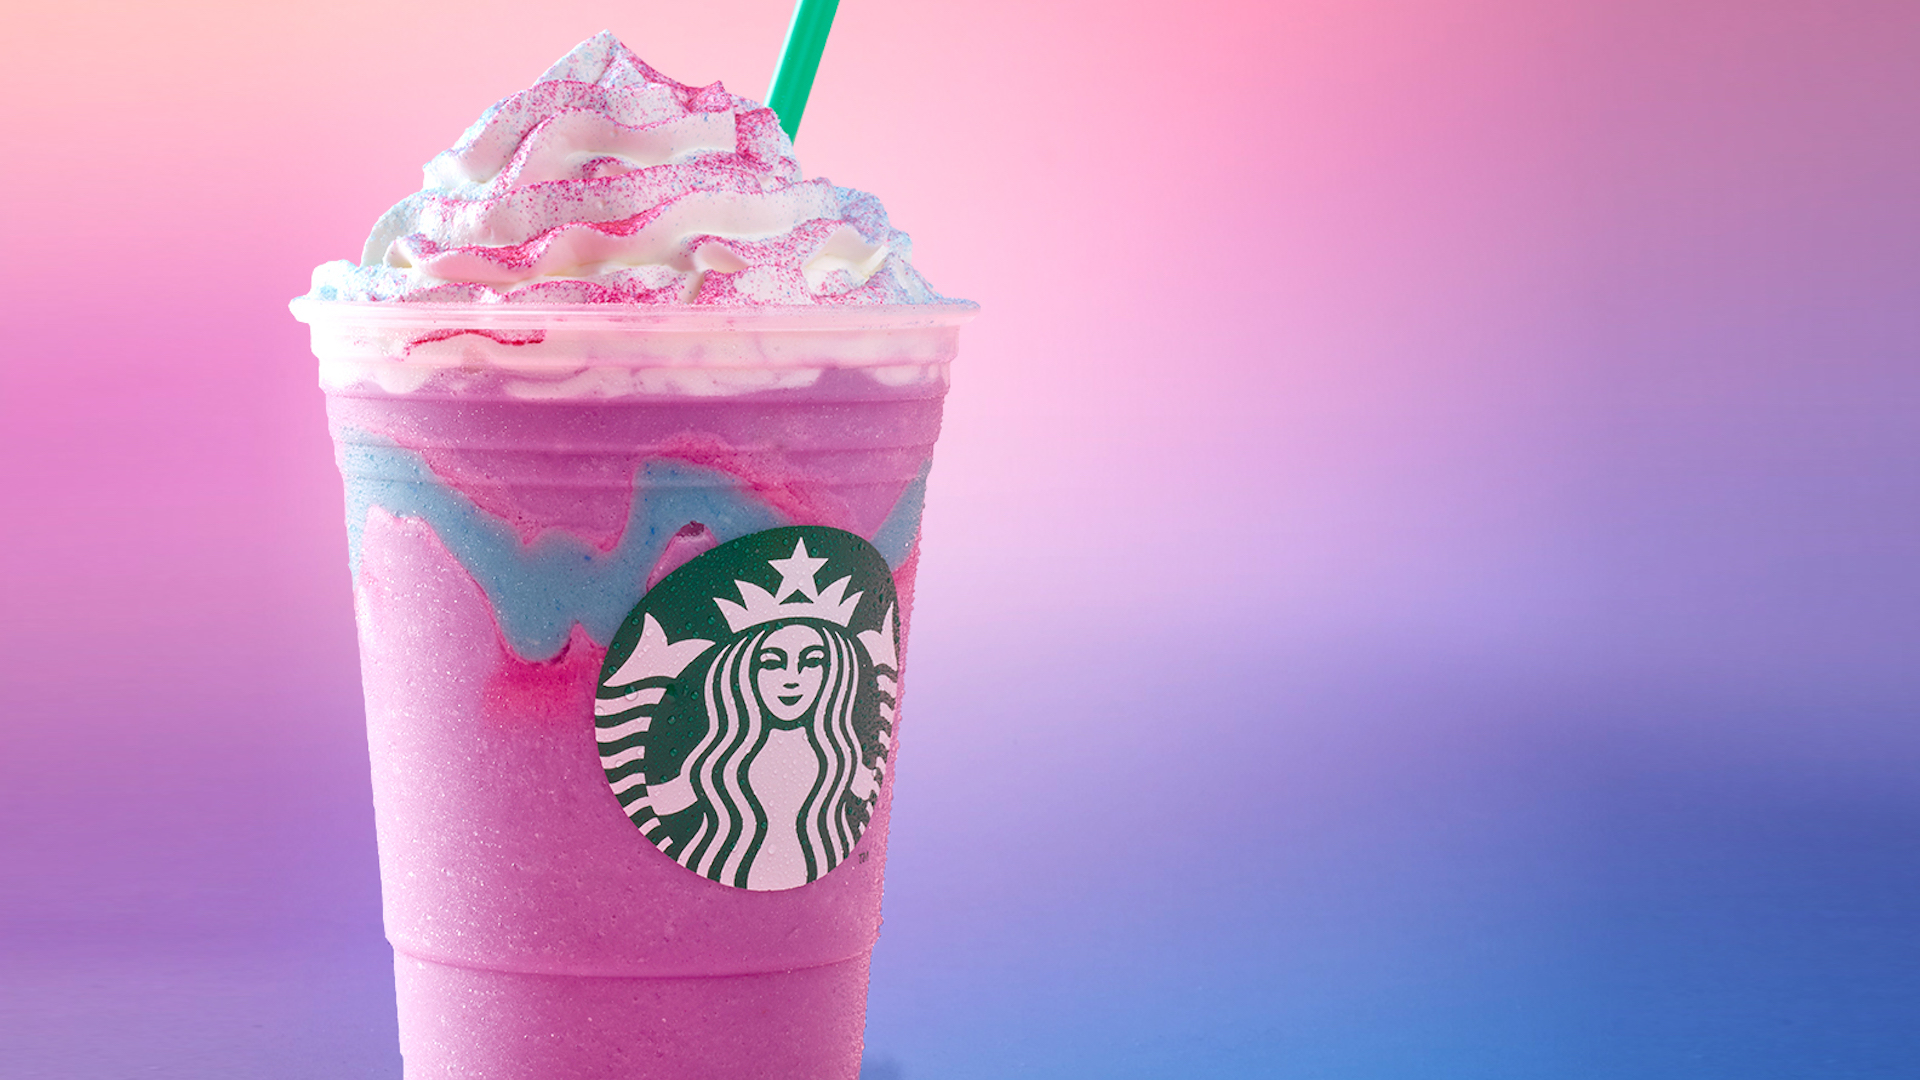 Mixed Reviews For Starbucks New Unicorn Drink